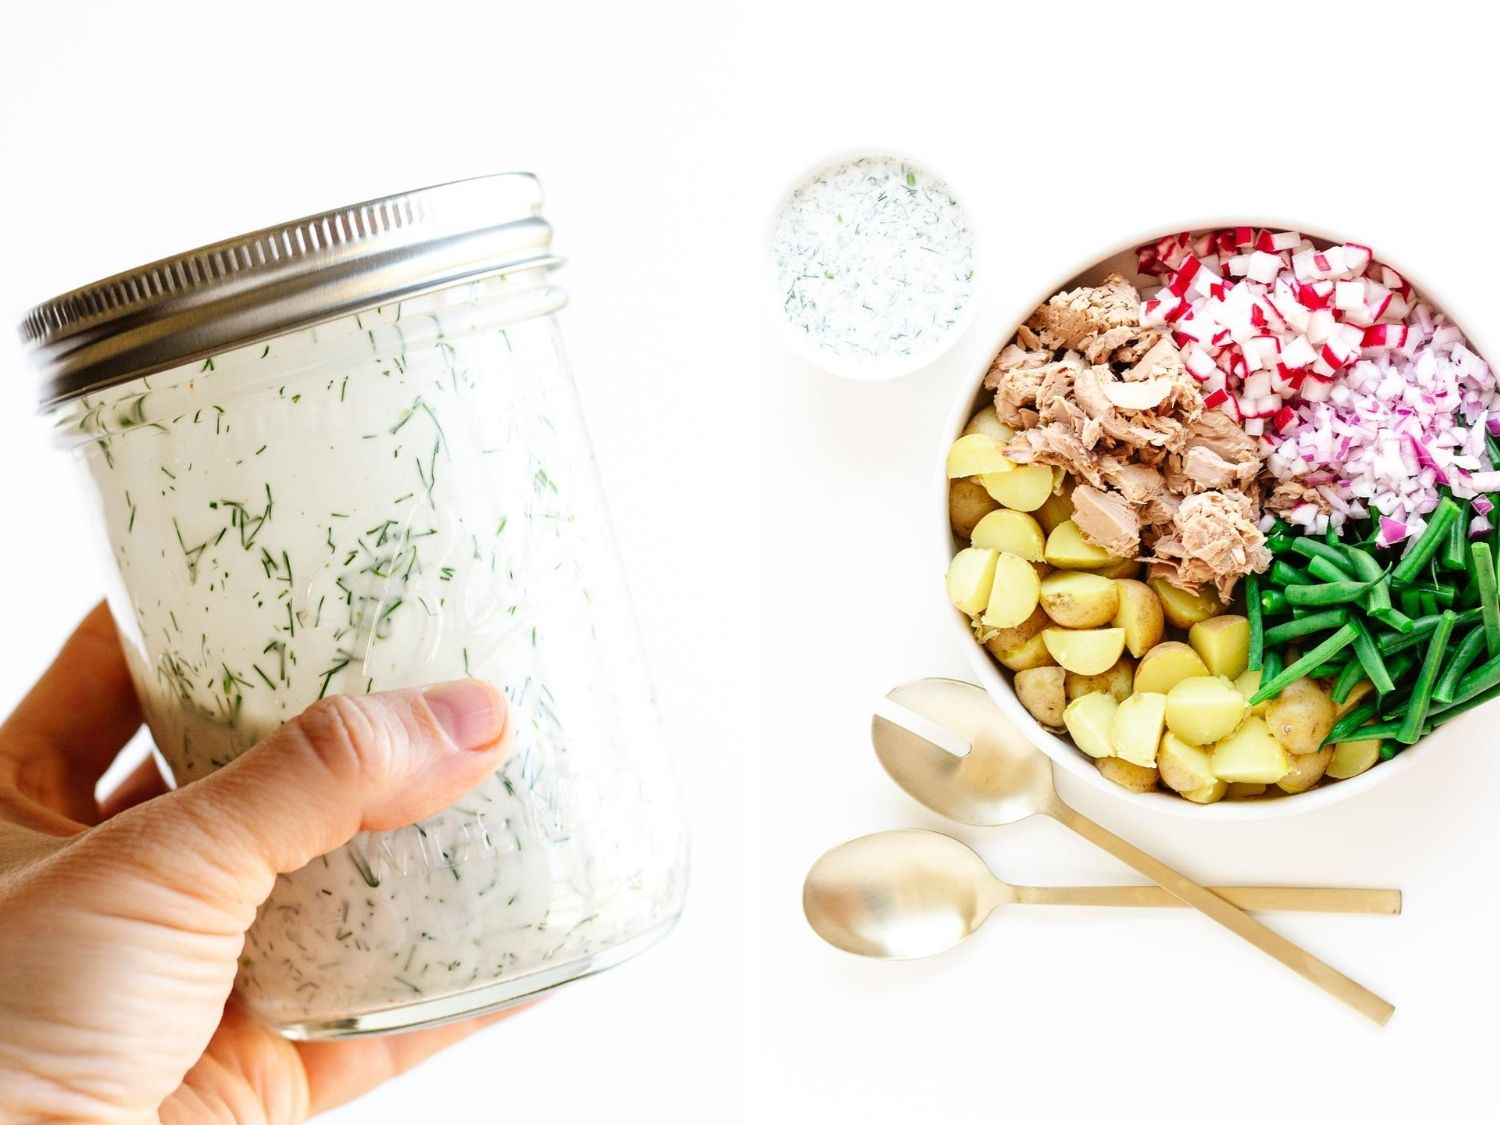 Collage of photos showing dill buttermilk dressing in a mason jar and overheard shot of tuna potato salad before it is mixed together.